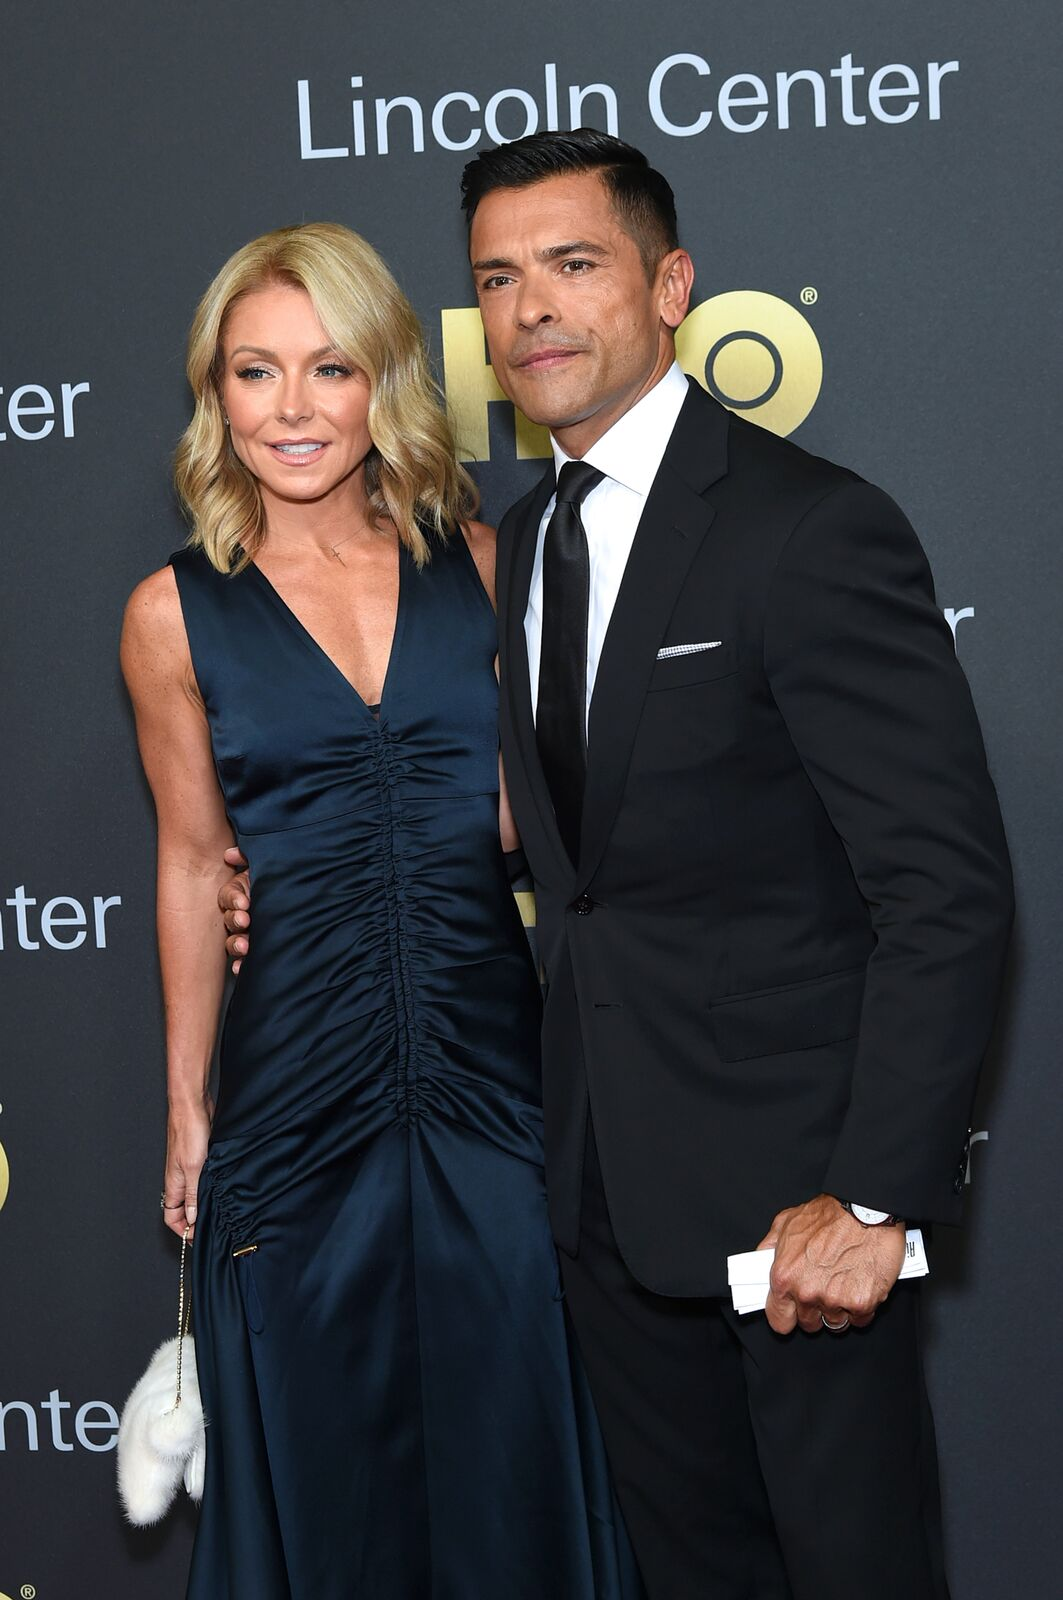 Actors Kelly Ripa (L) and Mark Consuelos attend Lincoln Center's American Songbook Gala at Alice Tully Hall on May 29, 2018 in New York City   Photo: Getty Images